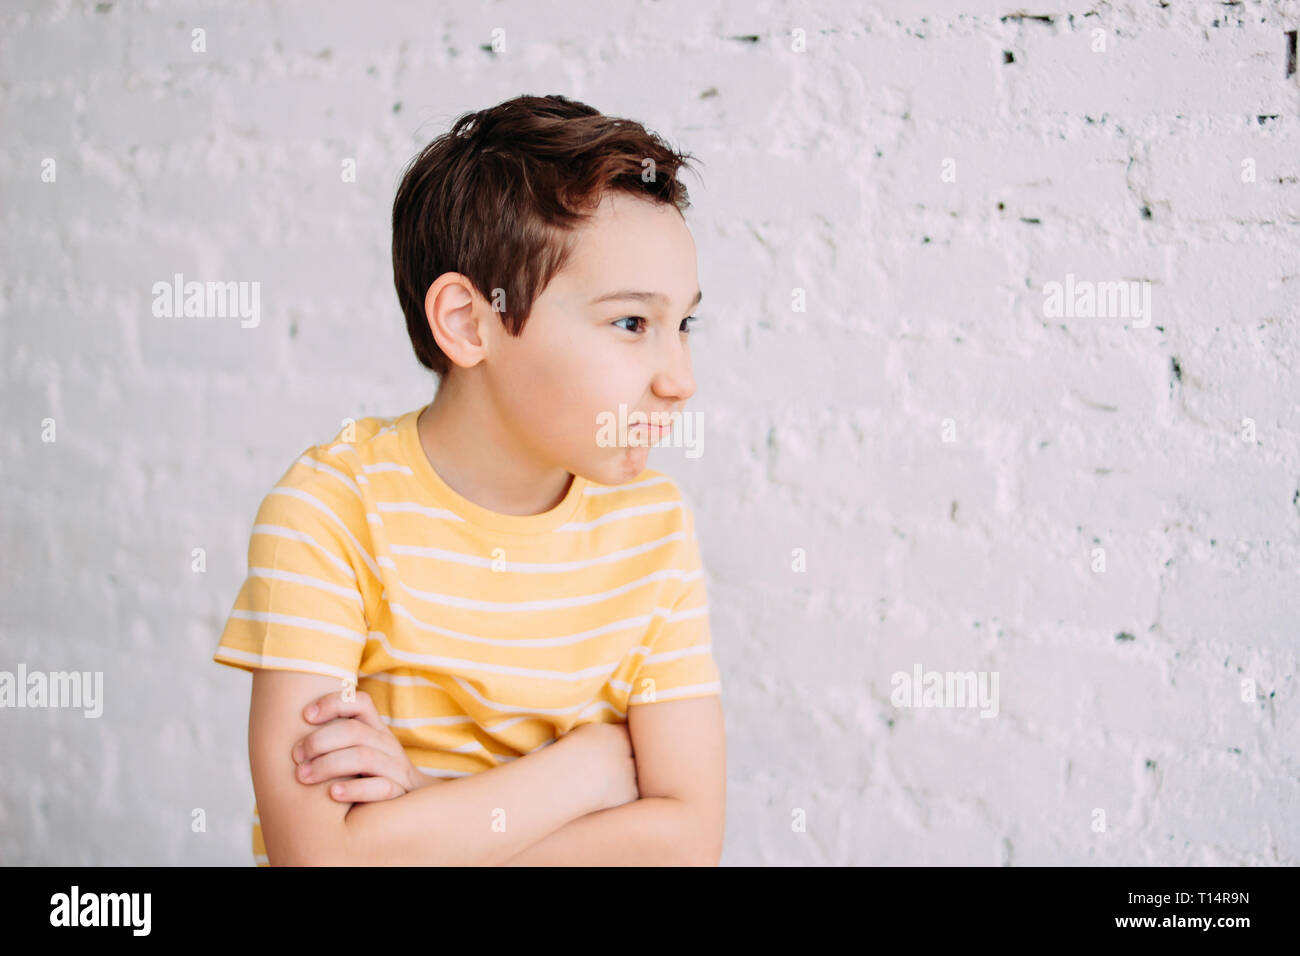 Cute tween angry boy with funny face in yellow t-shirt isolated on white brick wall background - Stock Image